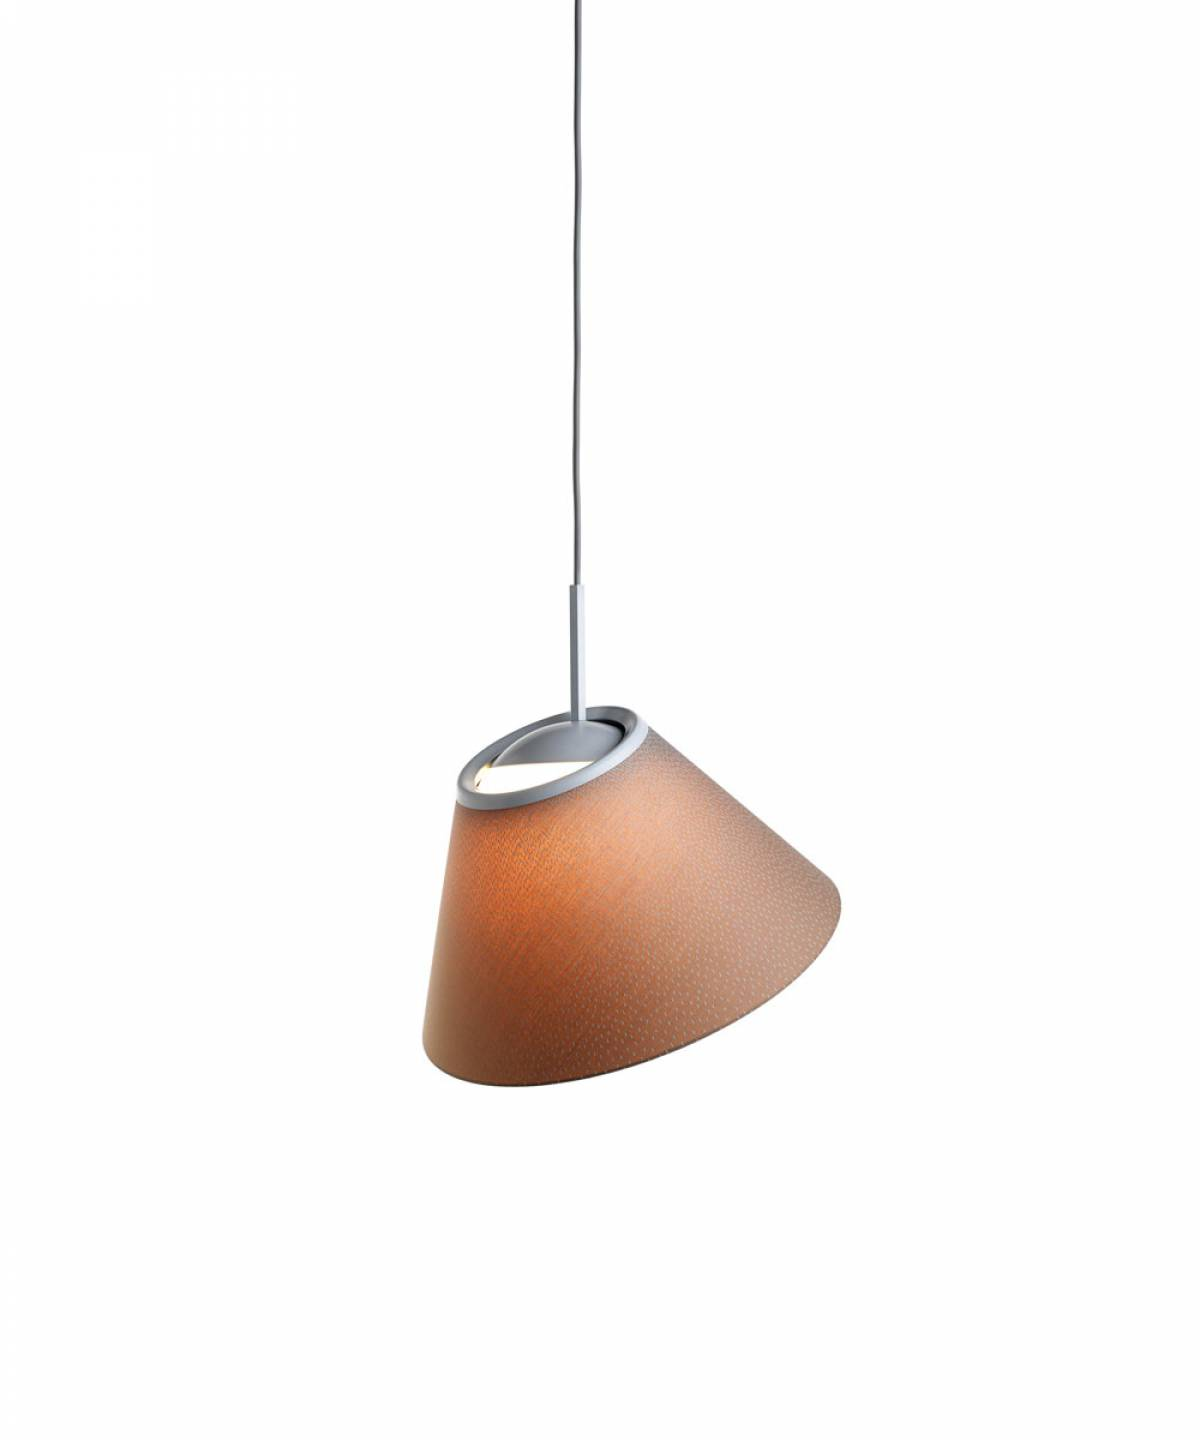 1 Cappuccina suspension lamp Luceplan